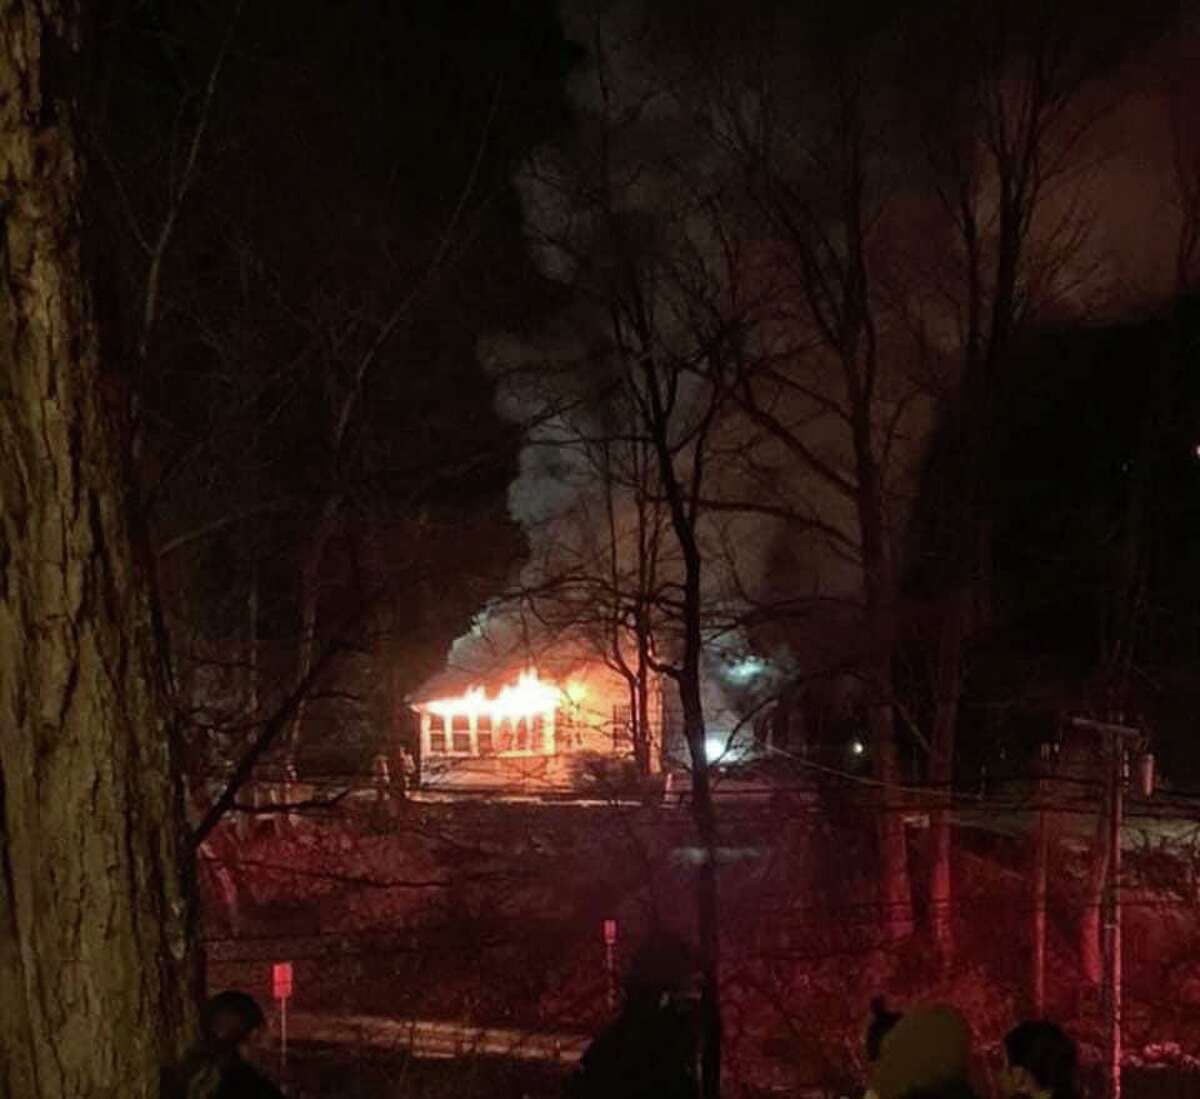 Firefighters battled a blaze in a structure on Main Street in Washington on Sunday, Dec. 22.